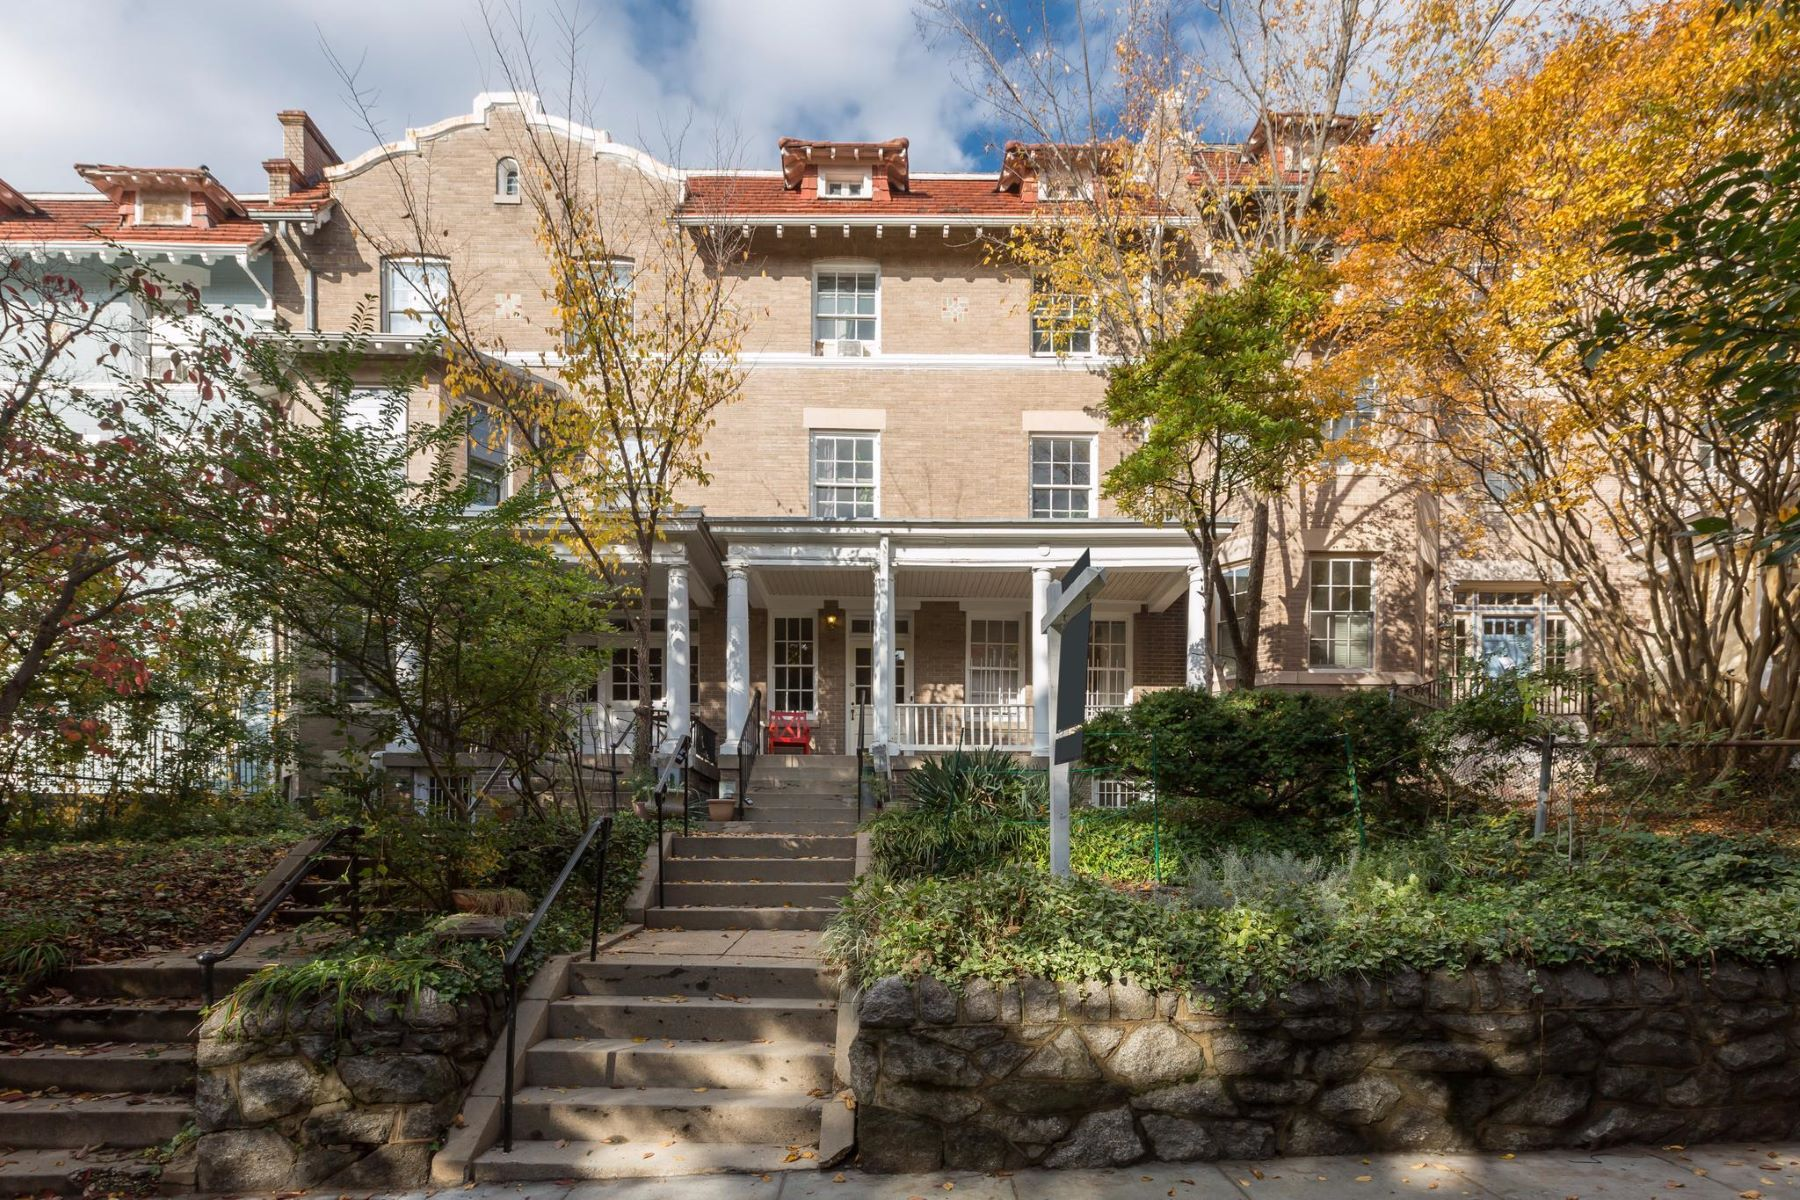 Multi-Family Home for Sale at 1835 Lamont St Nw Mount Pleasant, Washington, District Of Columbia, 20010 United States